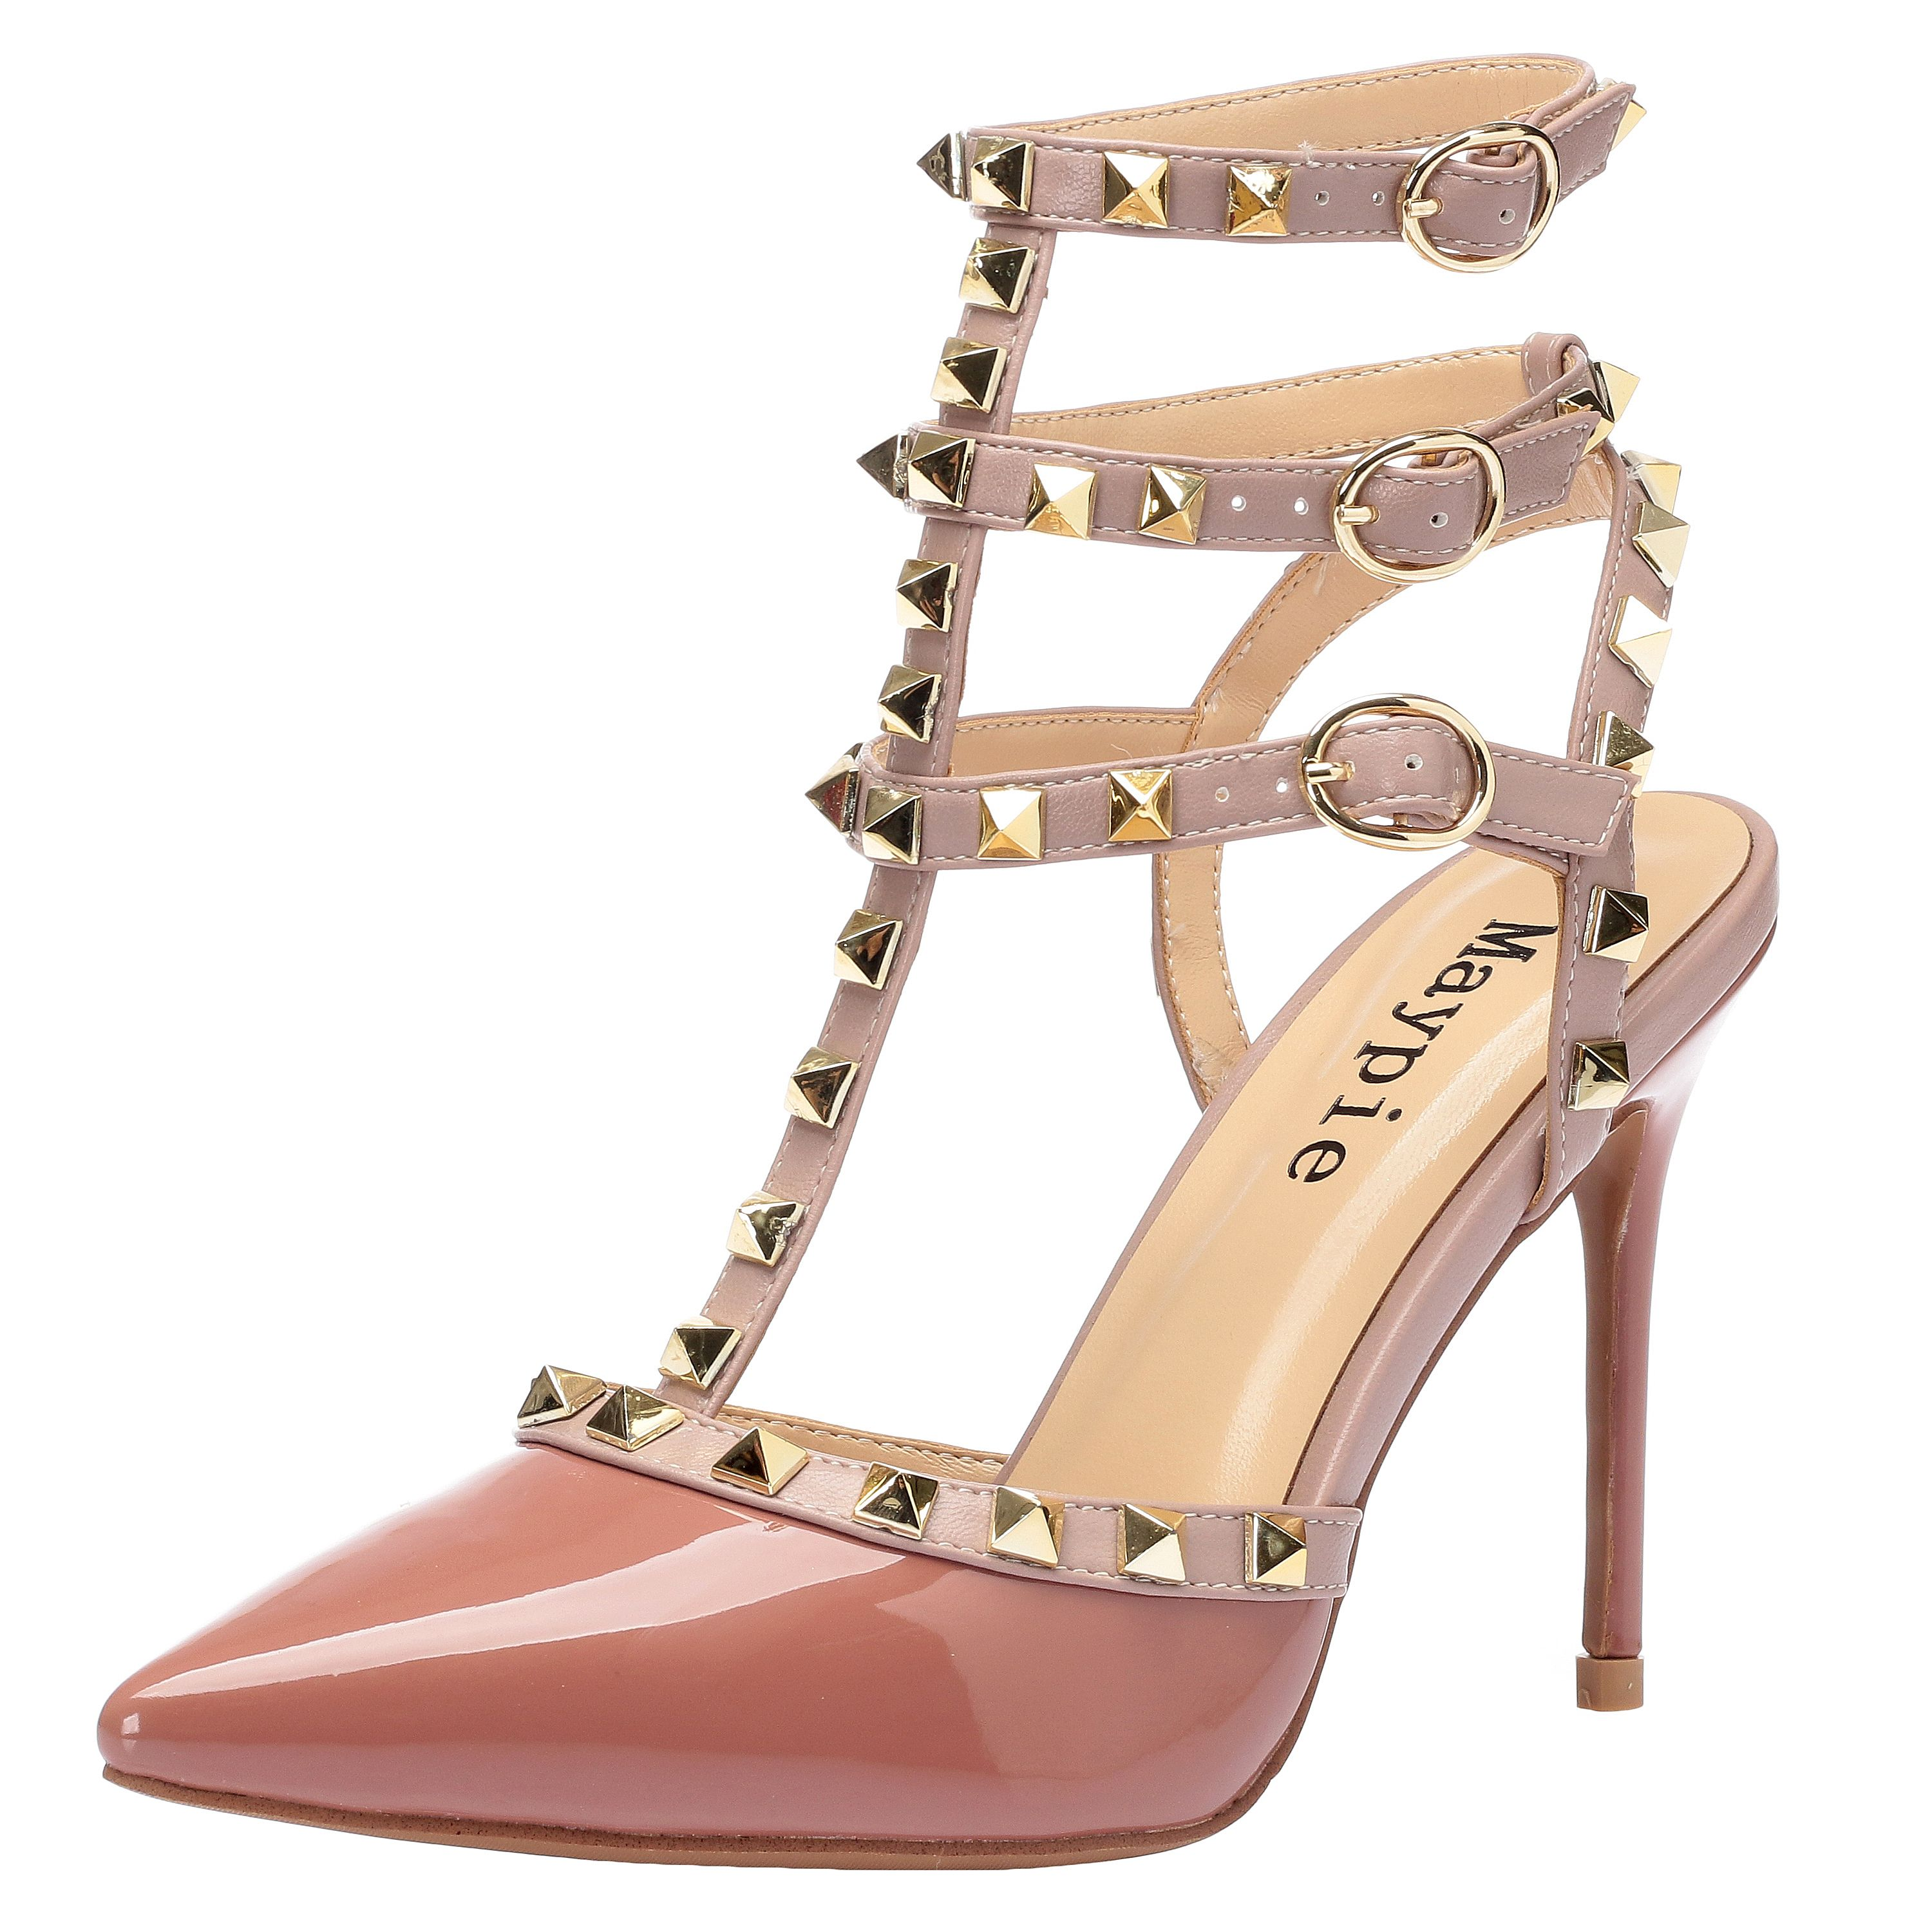 a9adcbb9c7 MAYPIE Women's Sexy Pointed Closed Toe Rivets Studded Ankle T-Strap 3.94  Inches High Heel Stiletto Pumps